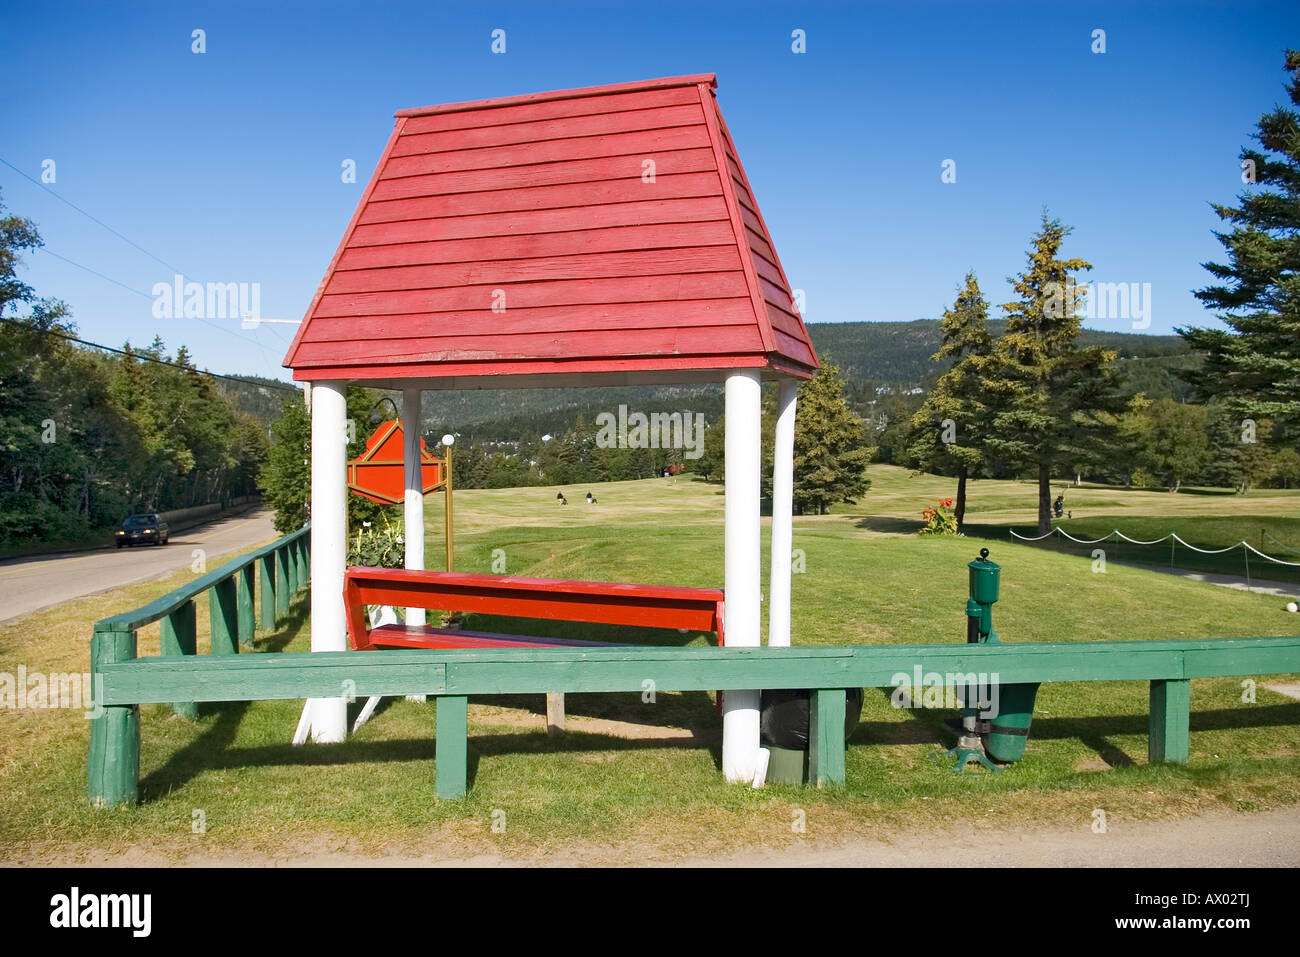 Tadoussac golf course 'tee off' on a beautiful sunny day - Stock Image